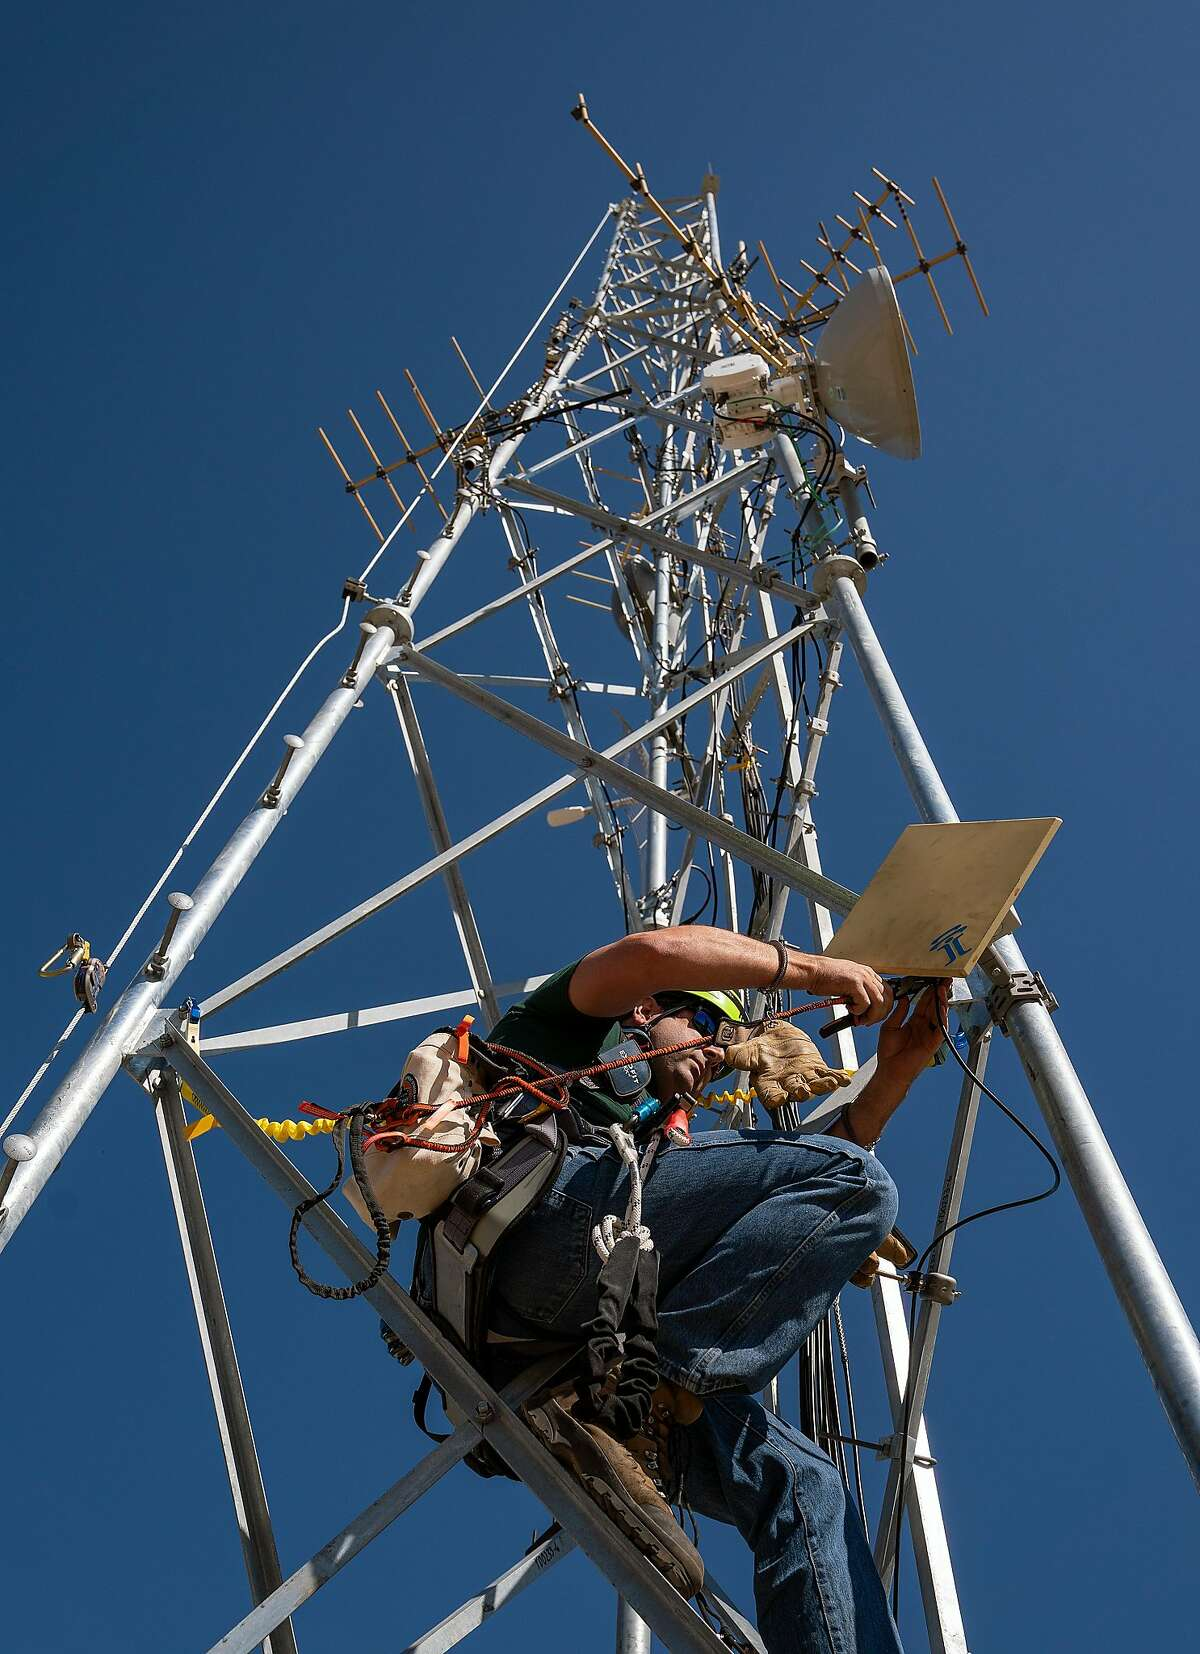 USGS RF Electronics Technician Darren Gray adds a cable support to a microwave radio mounted on a radio communication tower at the USGS earthquake monitoring site on Carr Hill on Wednesday, October 9, 2019 in Parkfield, Calif.